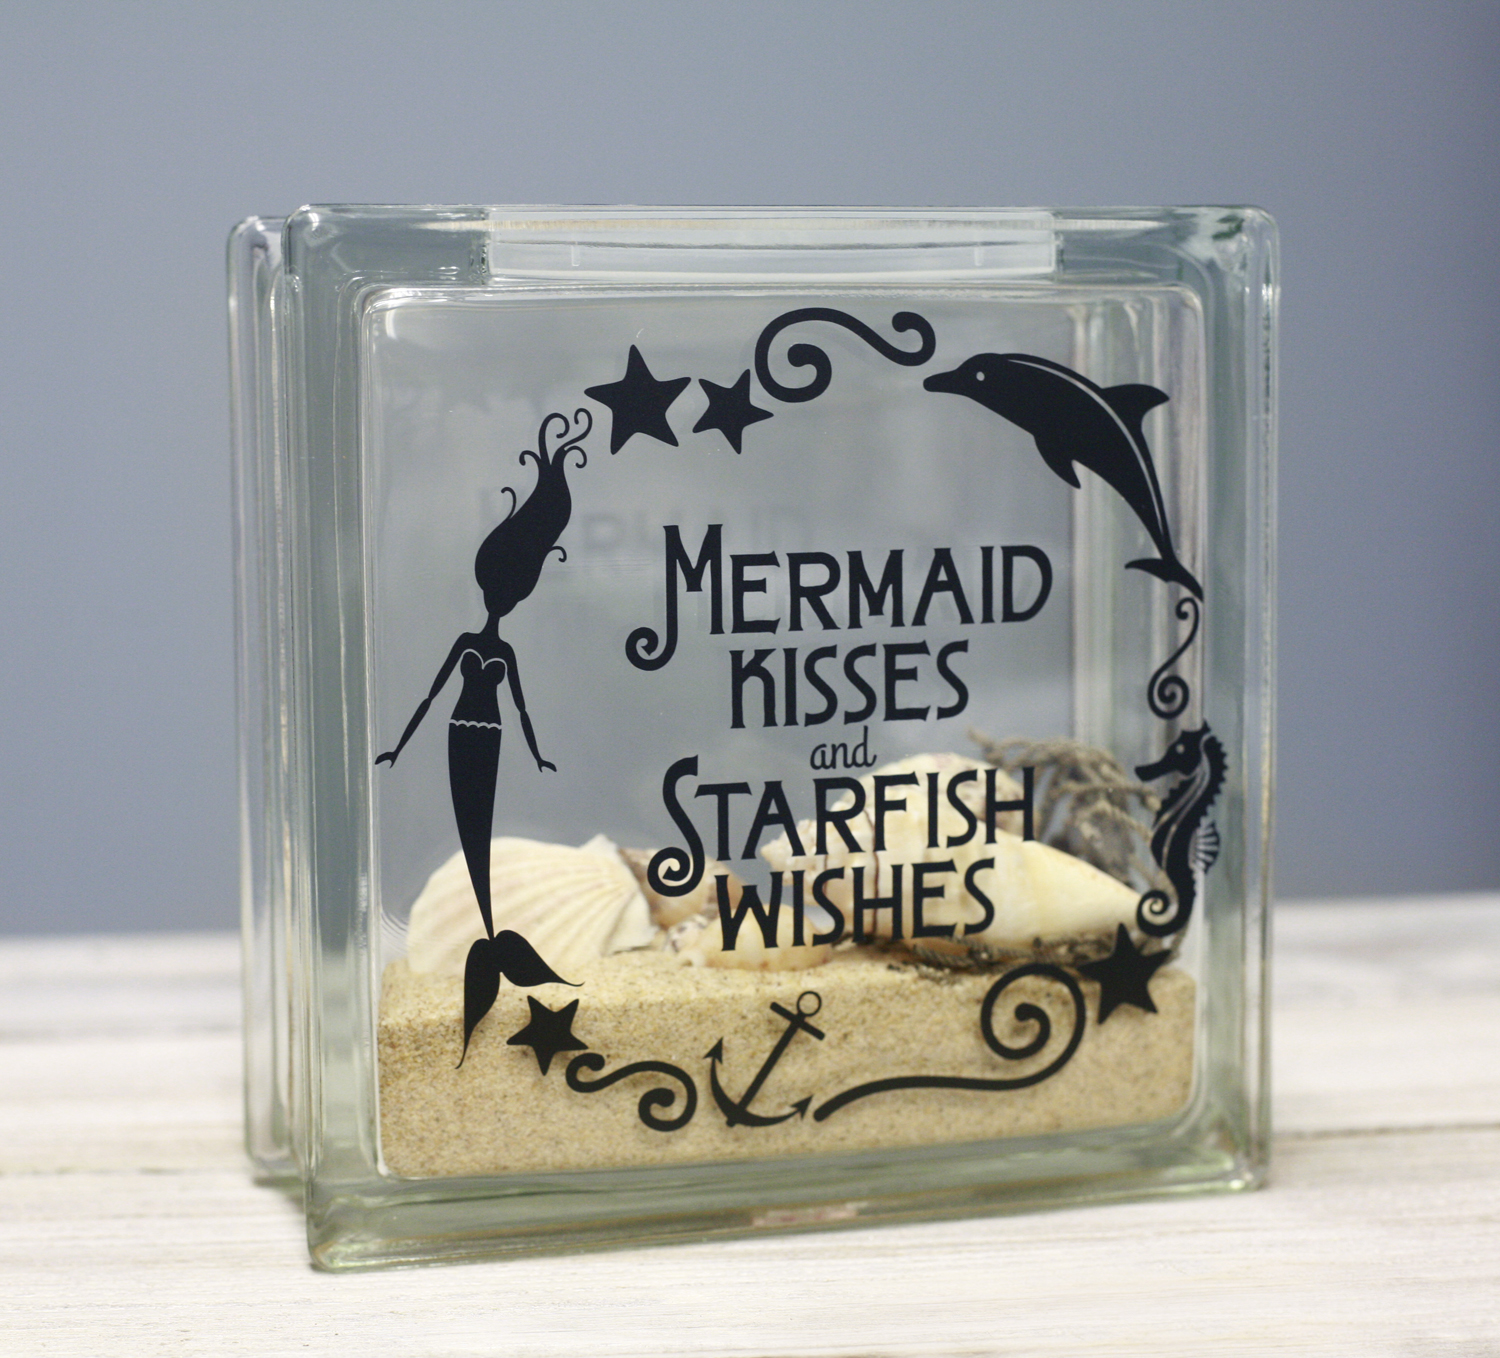 Ben franklin crafts and frame shop diy mermaid kisses for Clear glass blocks for crafts